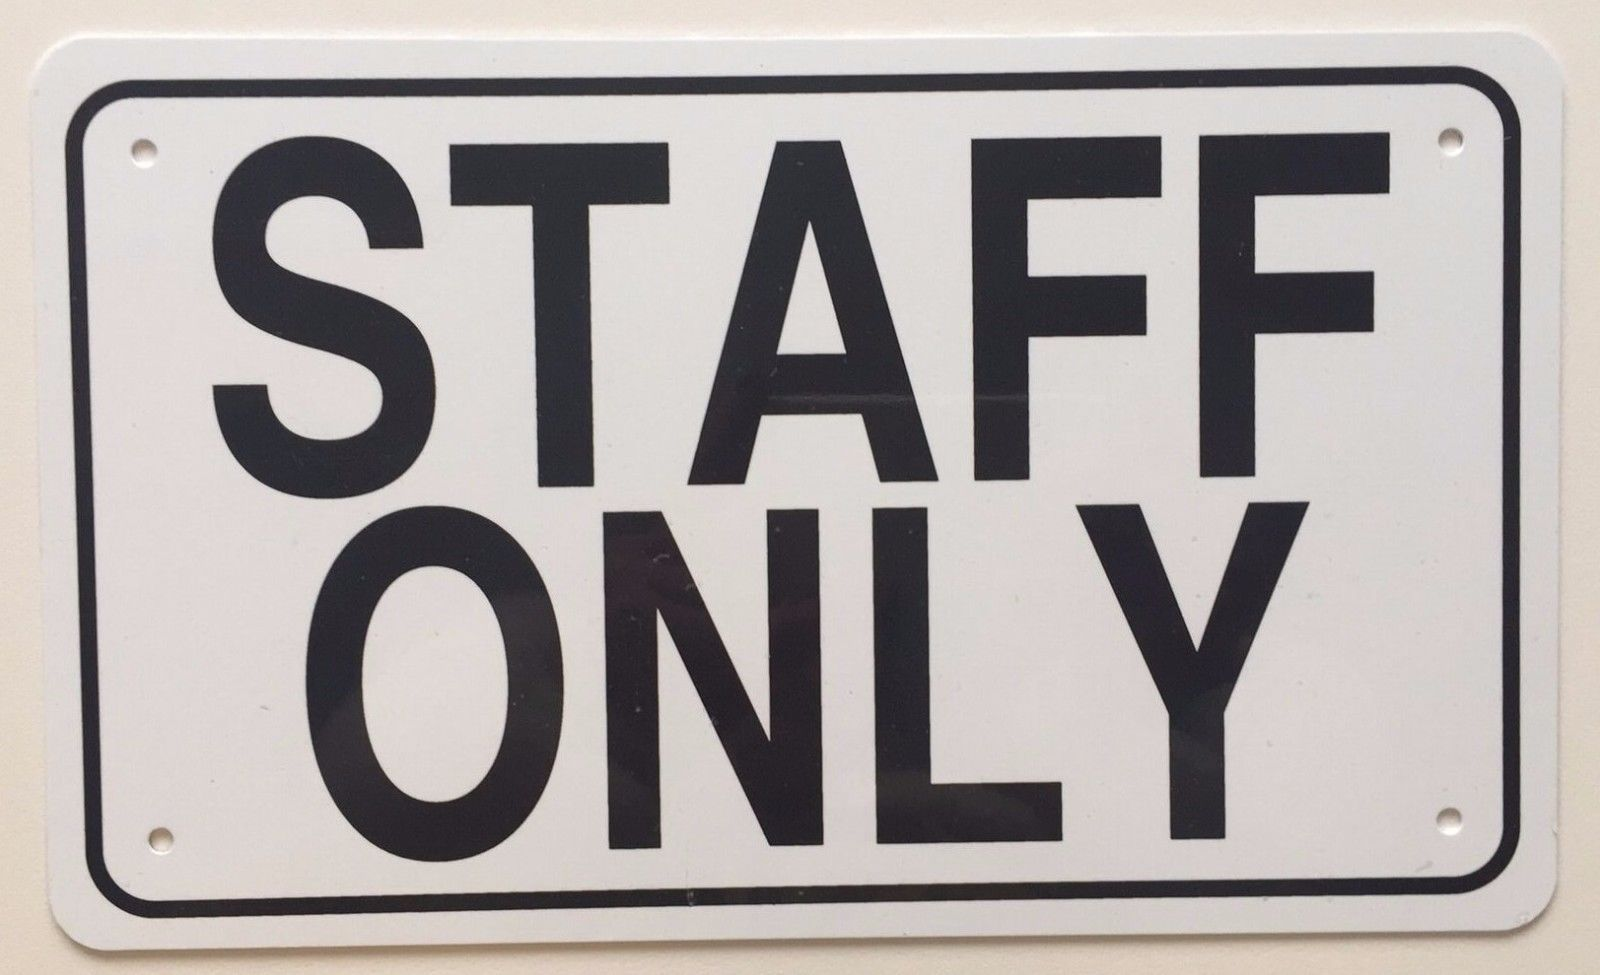 Details about staff only sign 6 x 10 with images